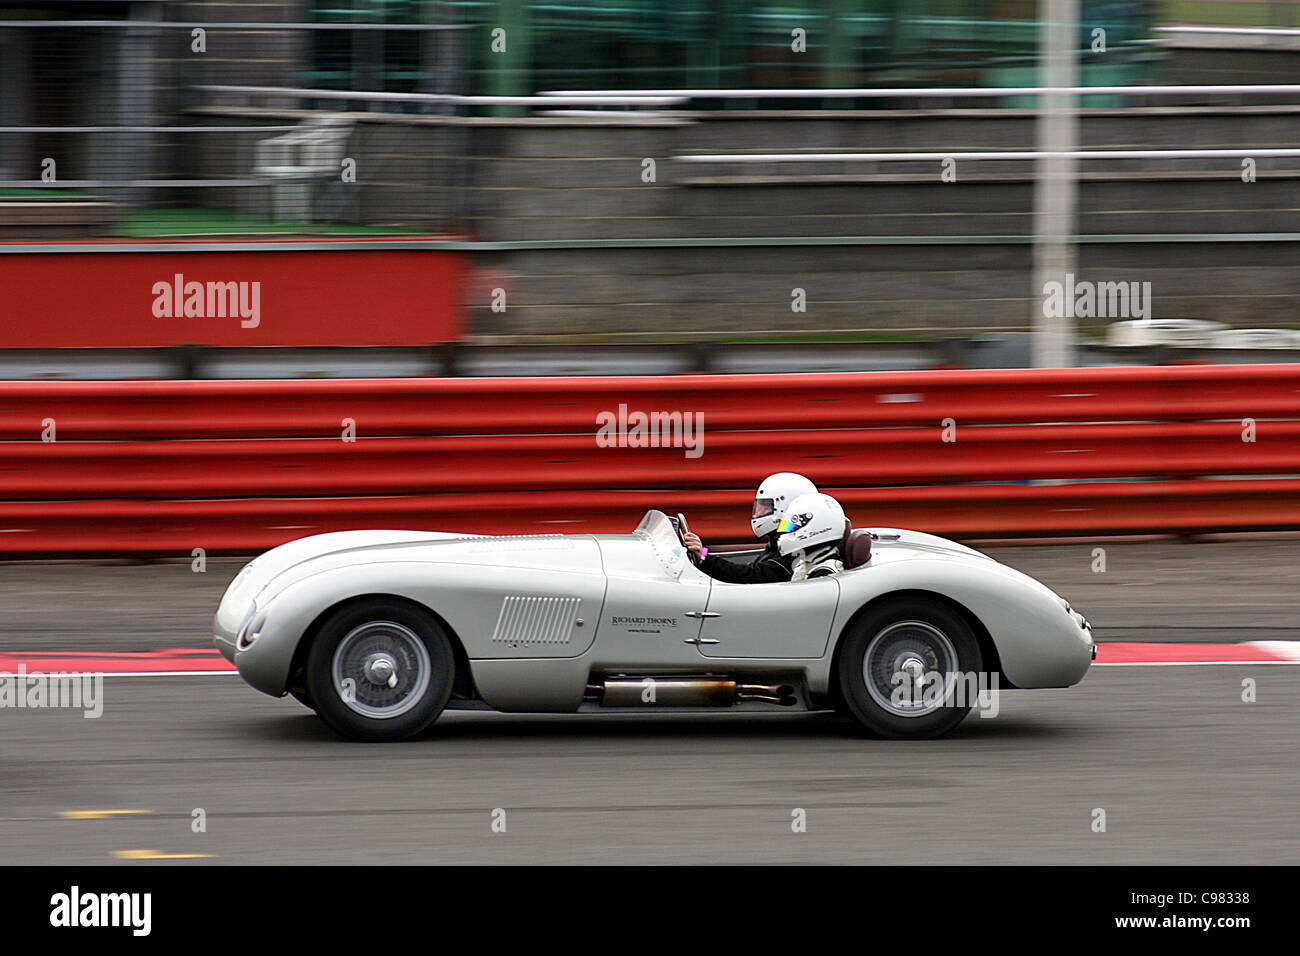 2011 Proteus C-Type on the track at Silverstone - Stock Image